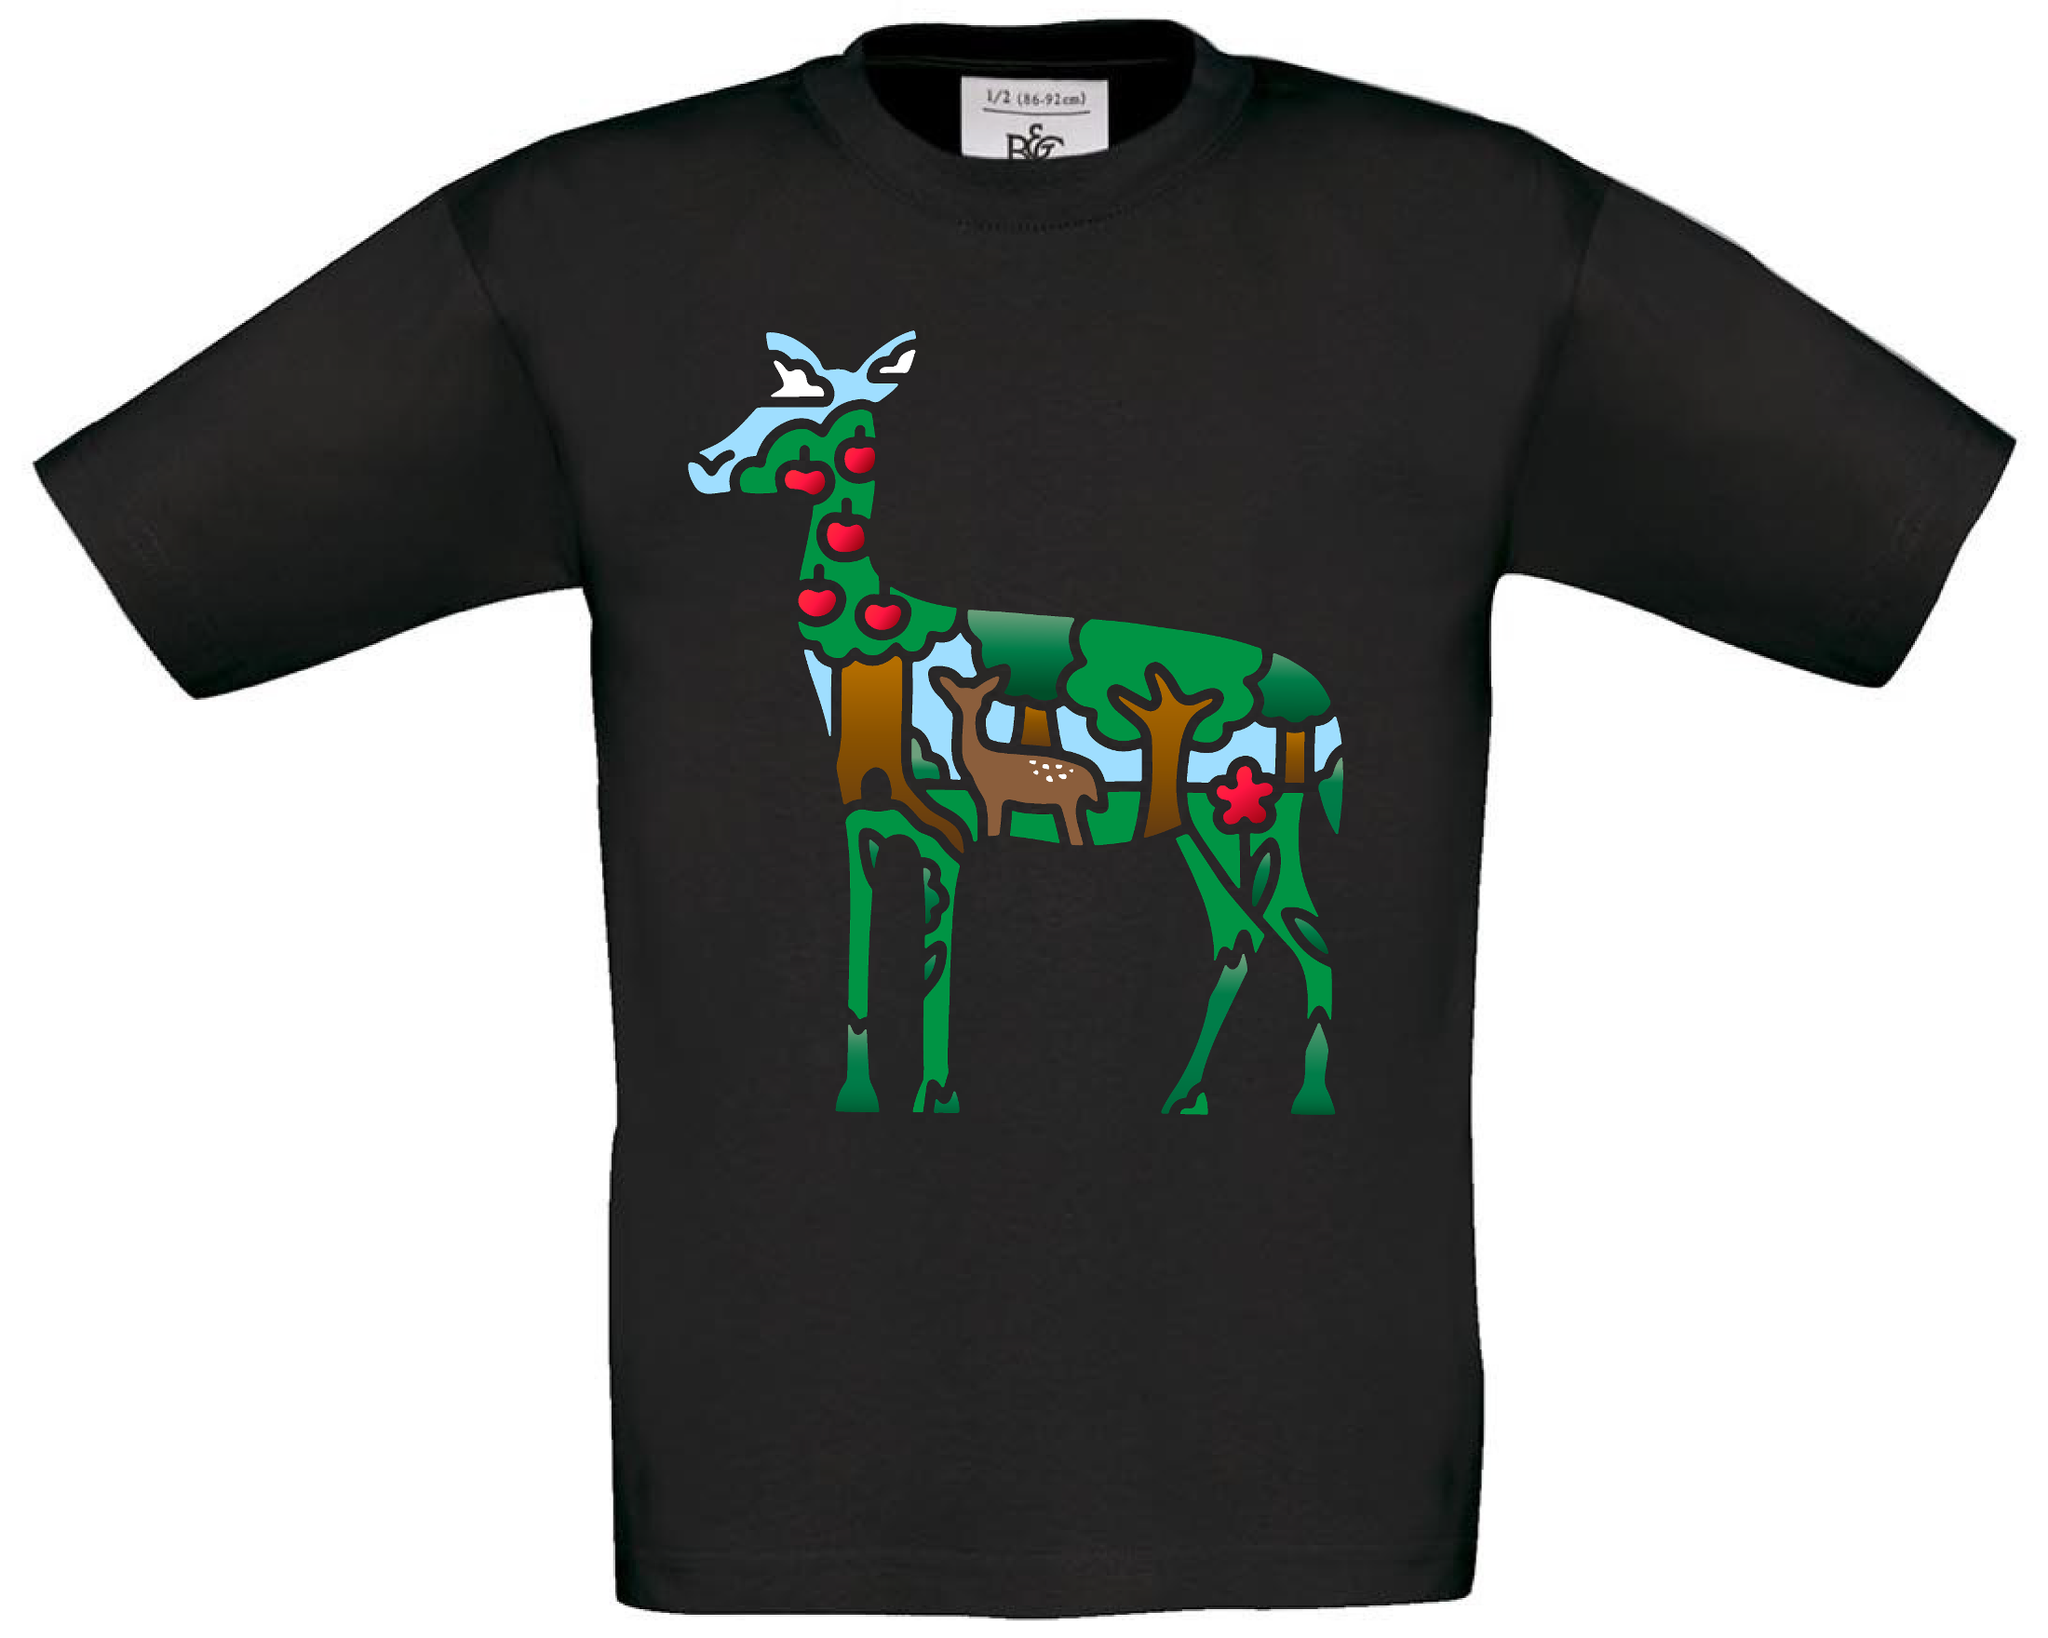 Deer With Forest Scenery T-Shirt